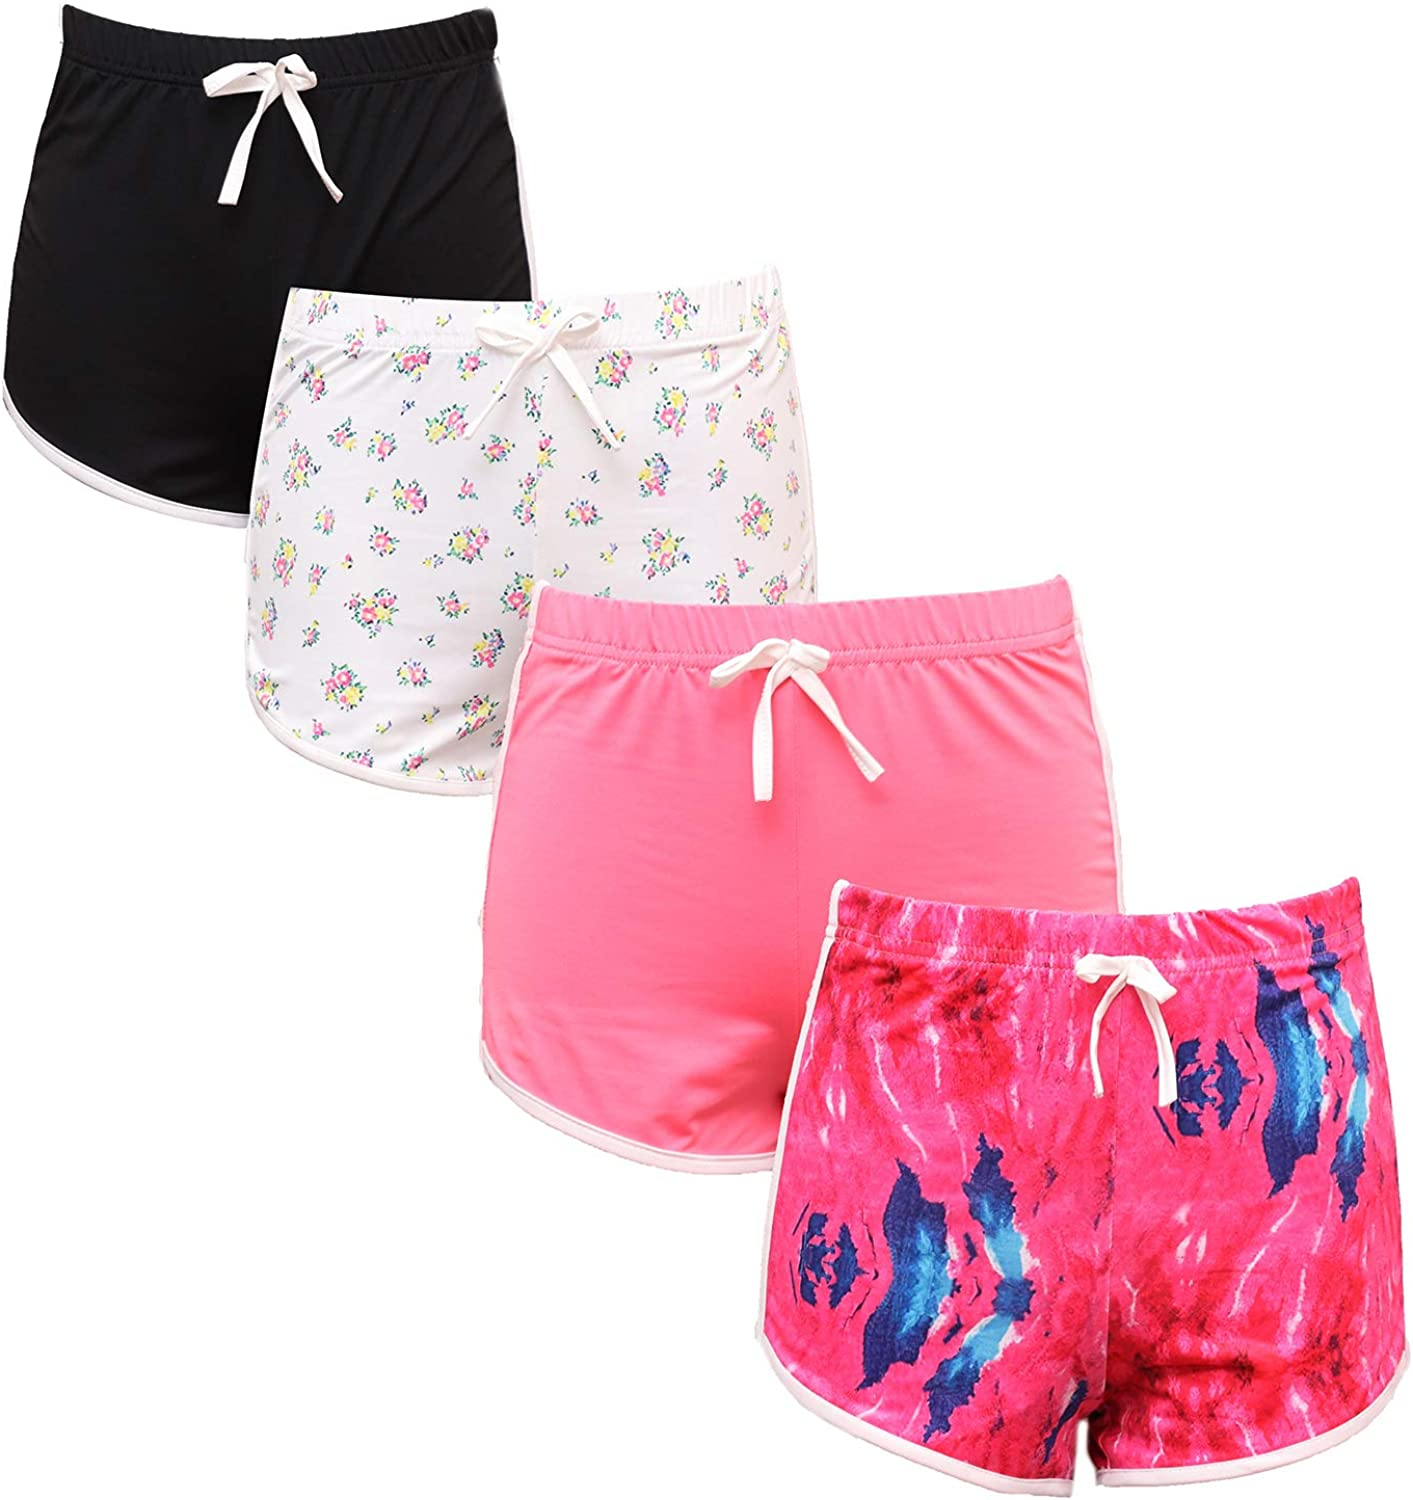 It is very popular Popularity 4PCS Girl Shorts Casual Fashion Dolphin Sh Workout